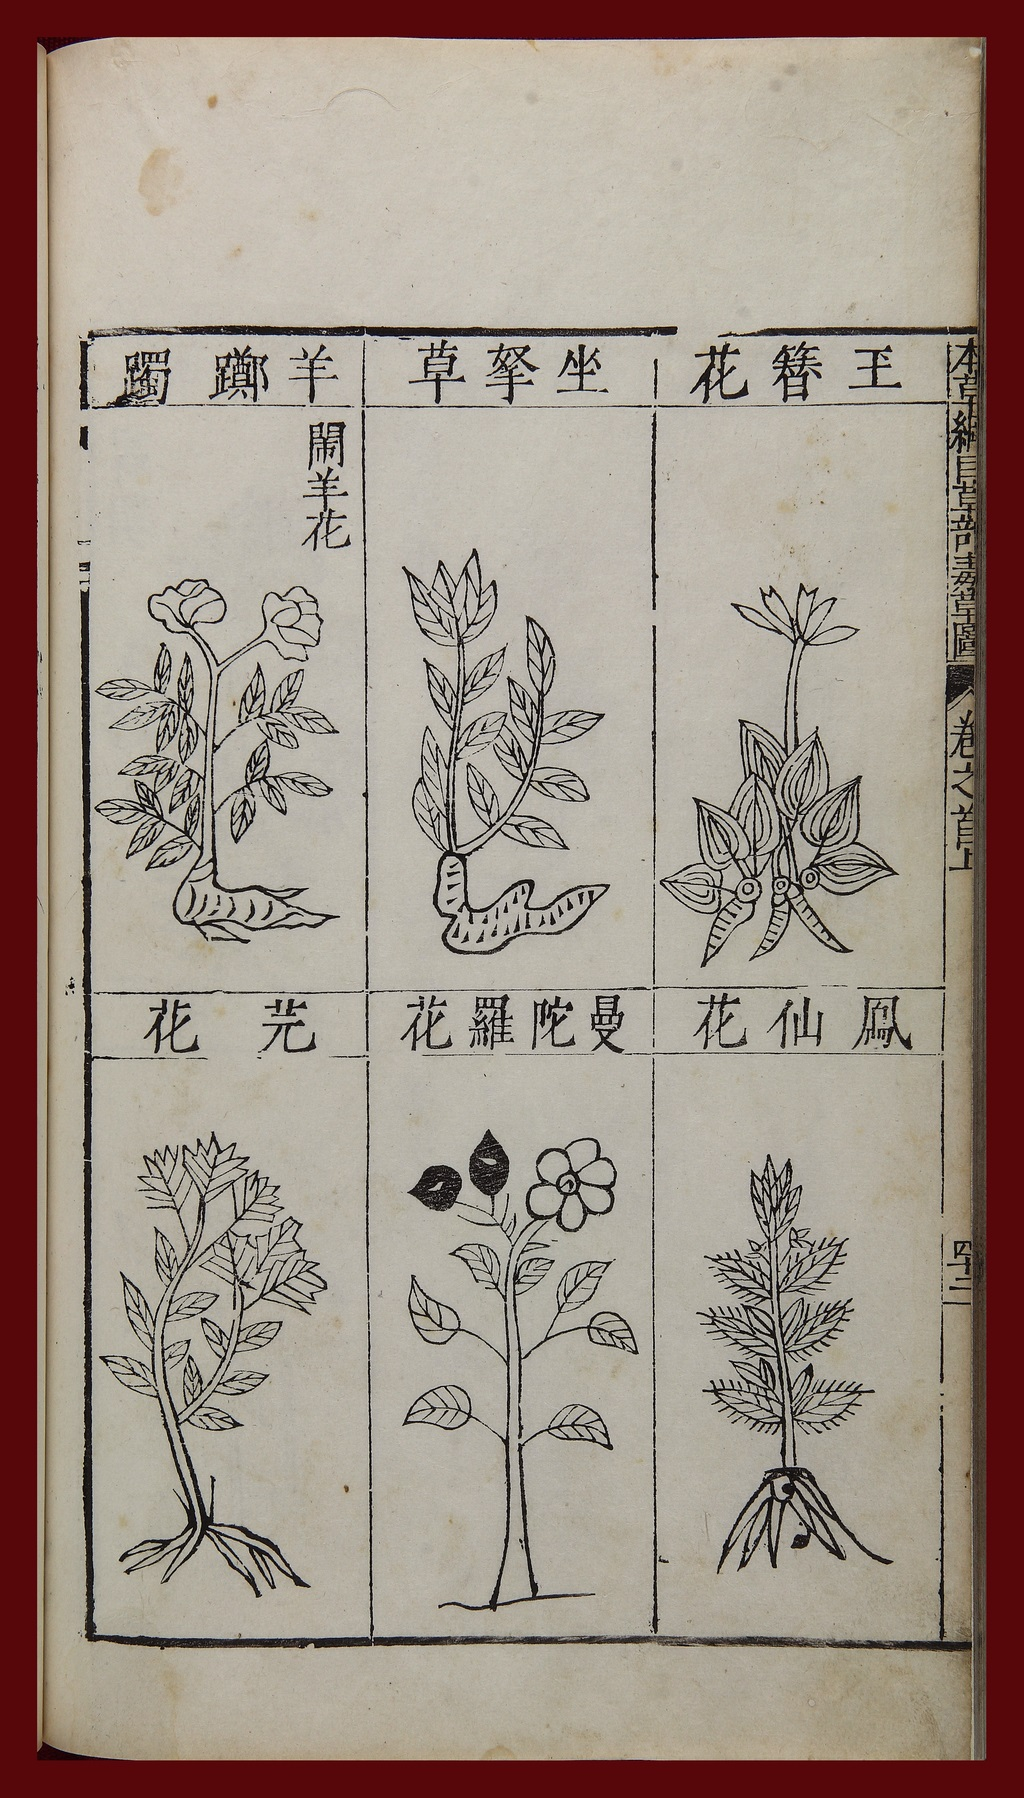 Additional images of toxic medicinal plants from Li Shizhen, Compendium of Materia Medica. Sit-grasp herb is in the middle of the top row, and datura flower in the middle of the bottom. Image credit: National Library of China. Posted on-line at the World Digital Library.